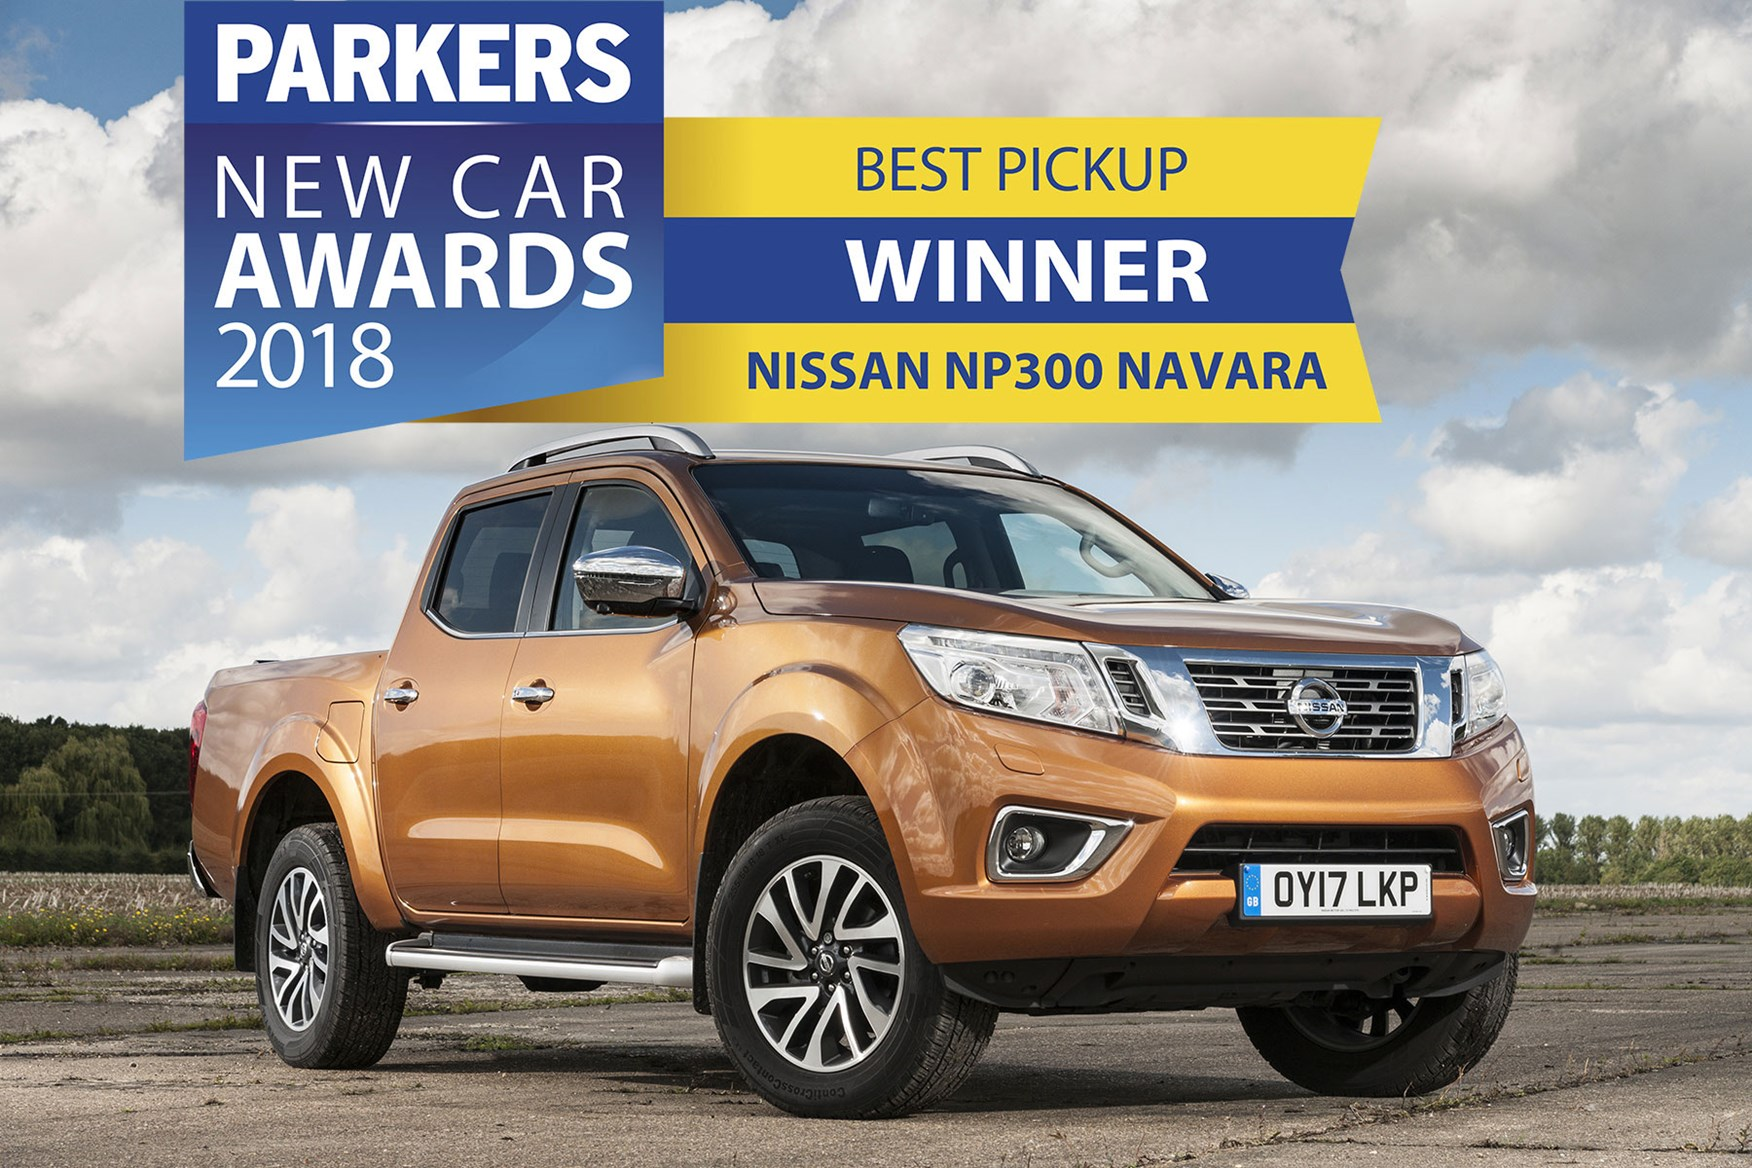 Nissan Navara review - Parkers Pickup of the Year 2018, awarded in 2017